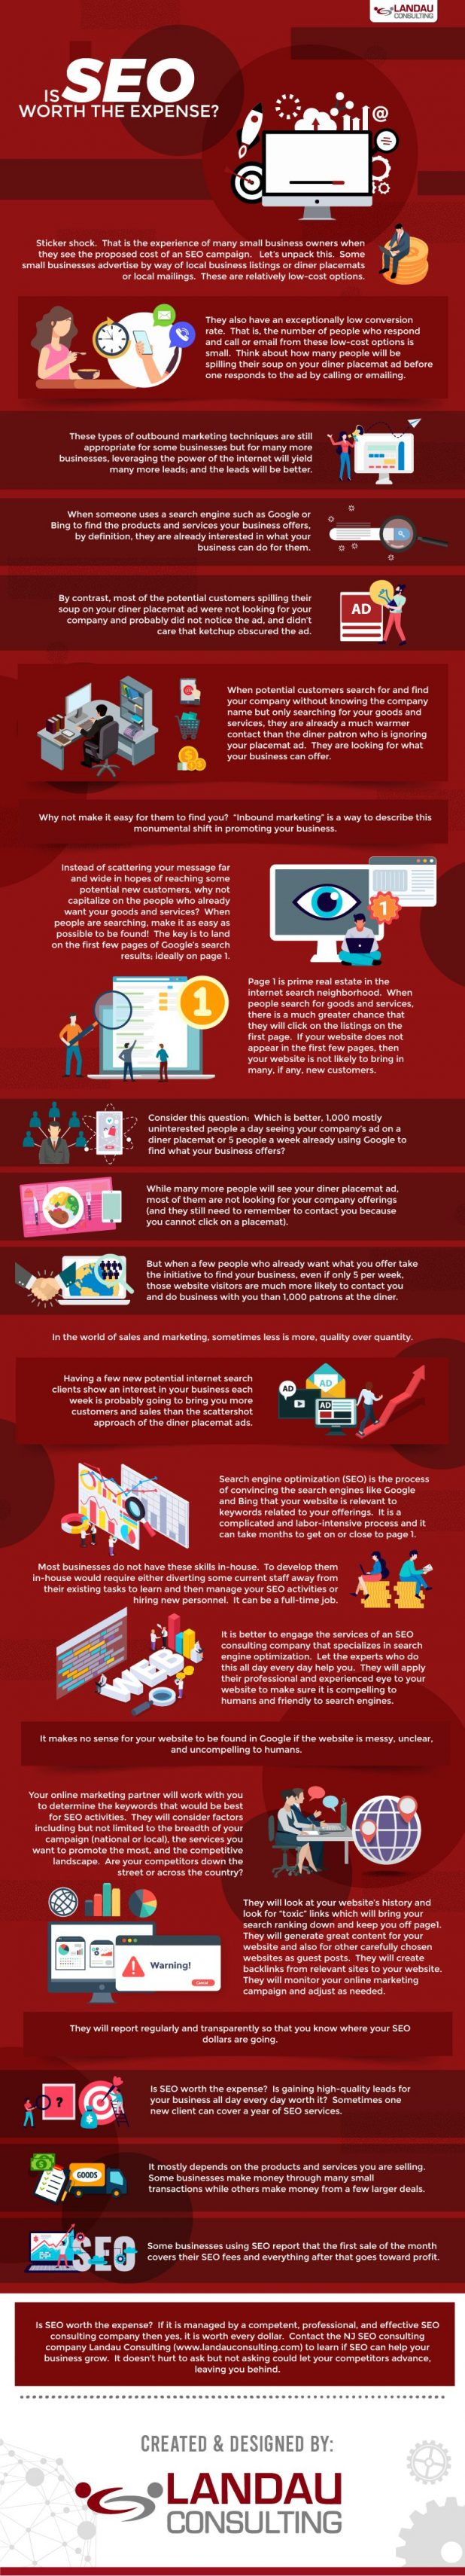 SEO: Reasons Why is Important for Your Business Growth [Infographic]